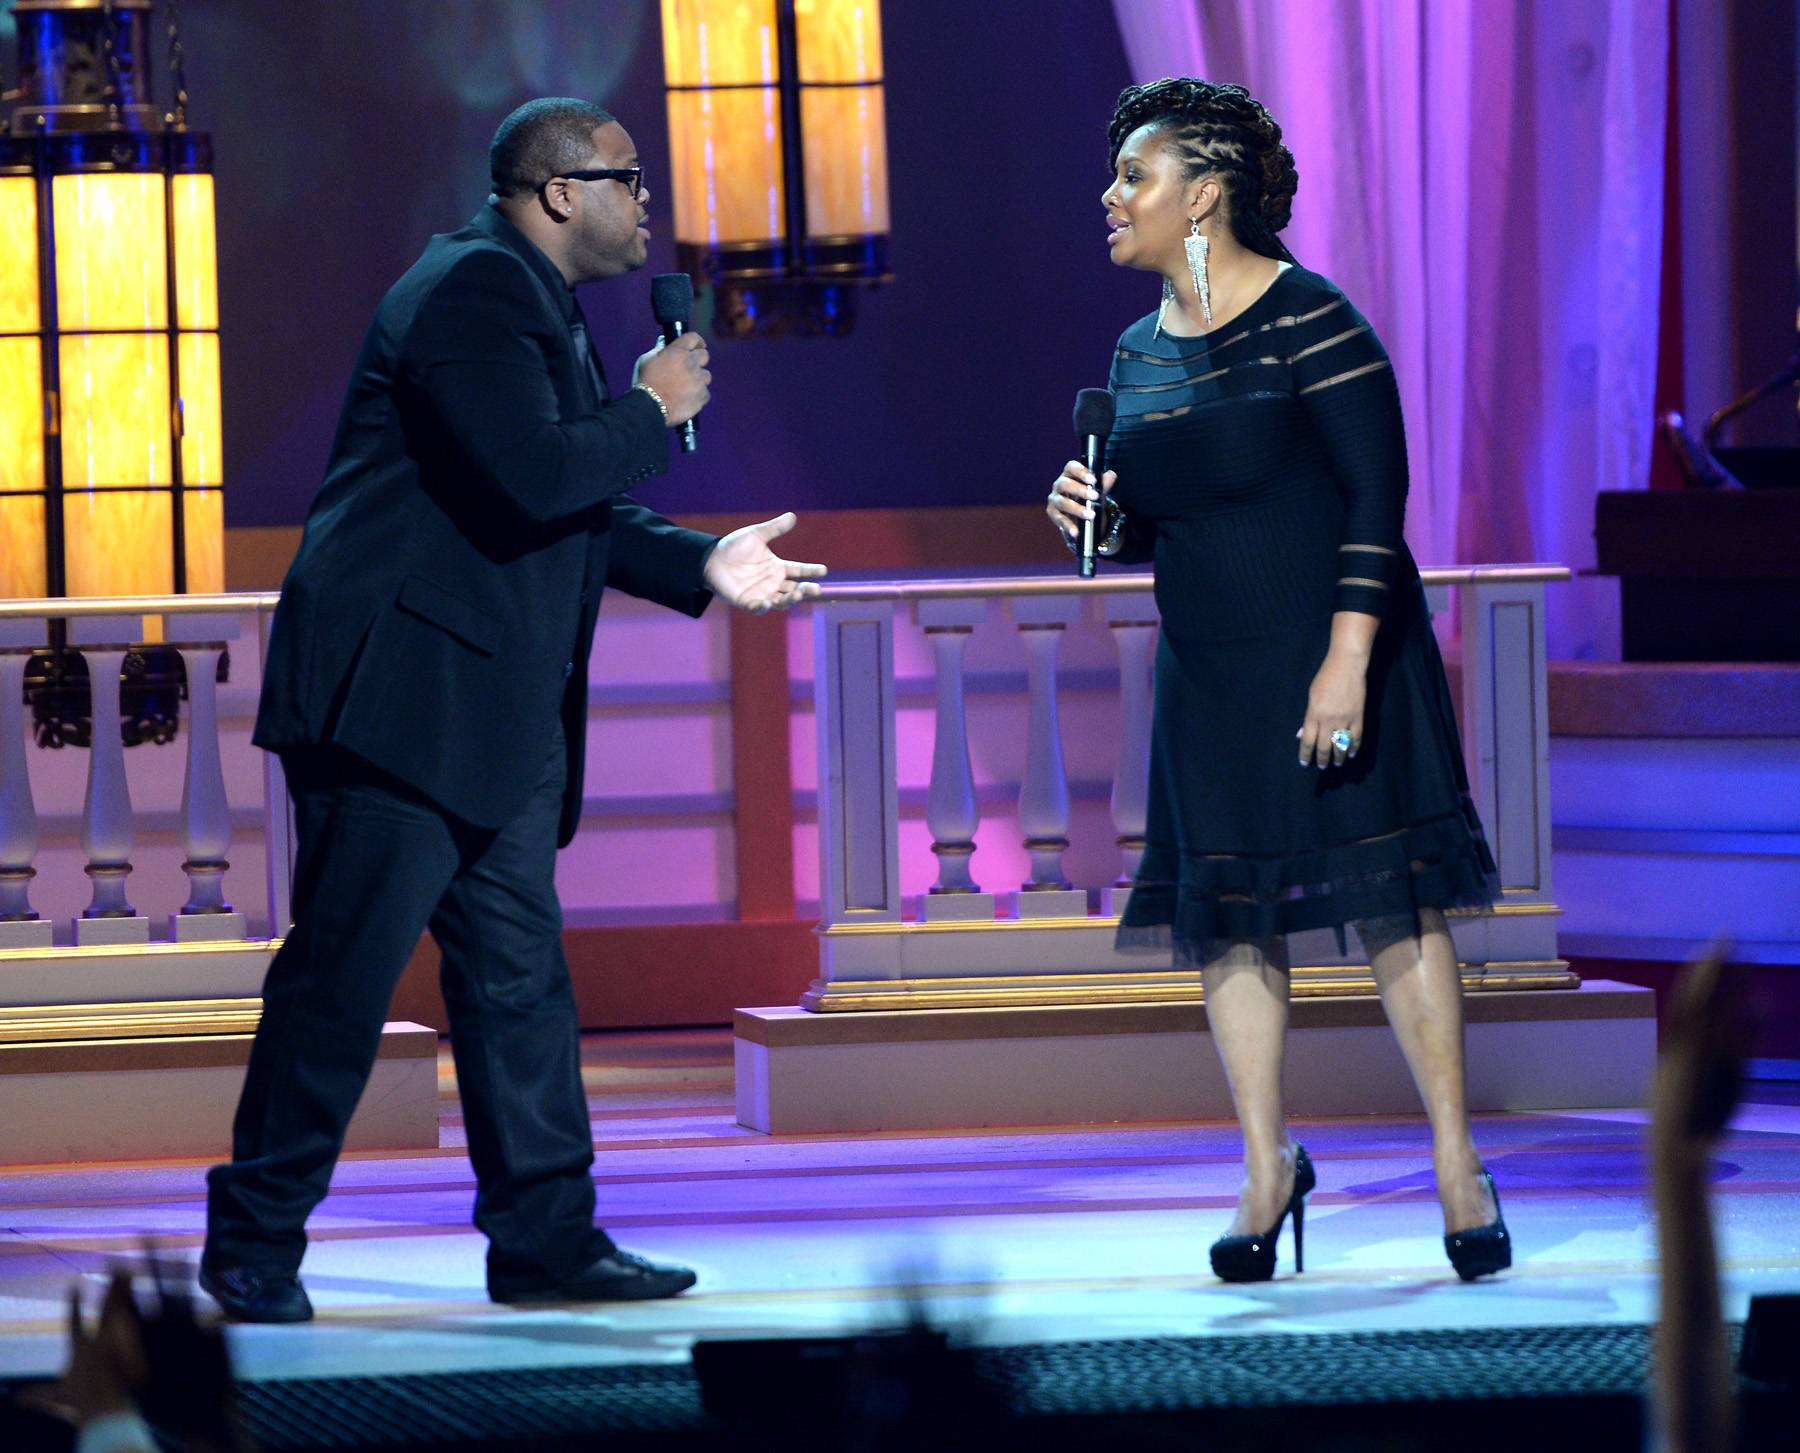 Zacardi and Lalah - The incomparable Lalah Hathaway delivered one of the best performances of the night with Zacardi Cortez.(Photo: Jason Kempin/Getty Images for BET)